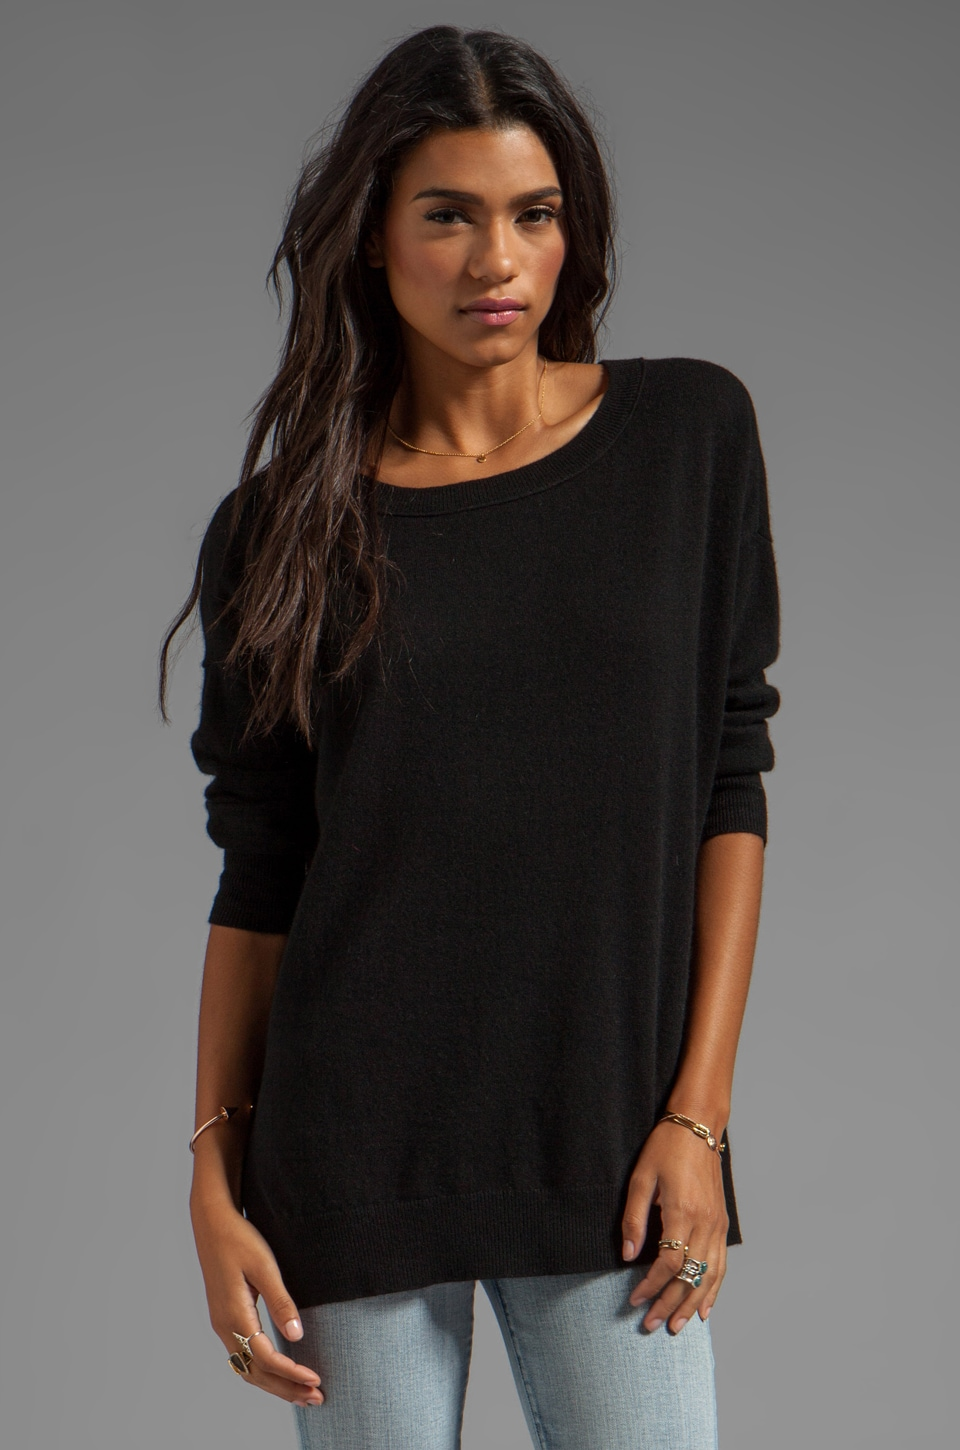 Inhabit Cashmere Weekend Sweater in Black